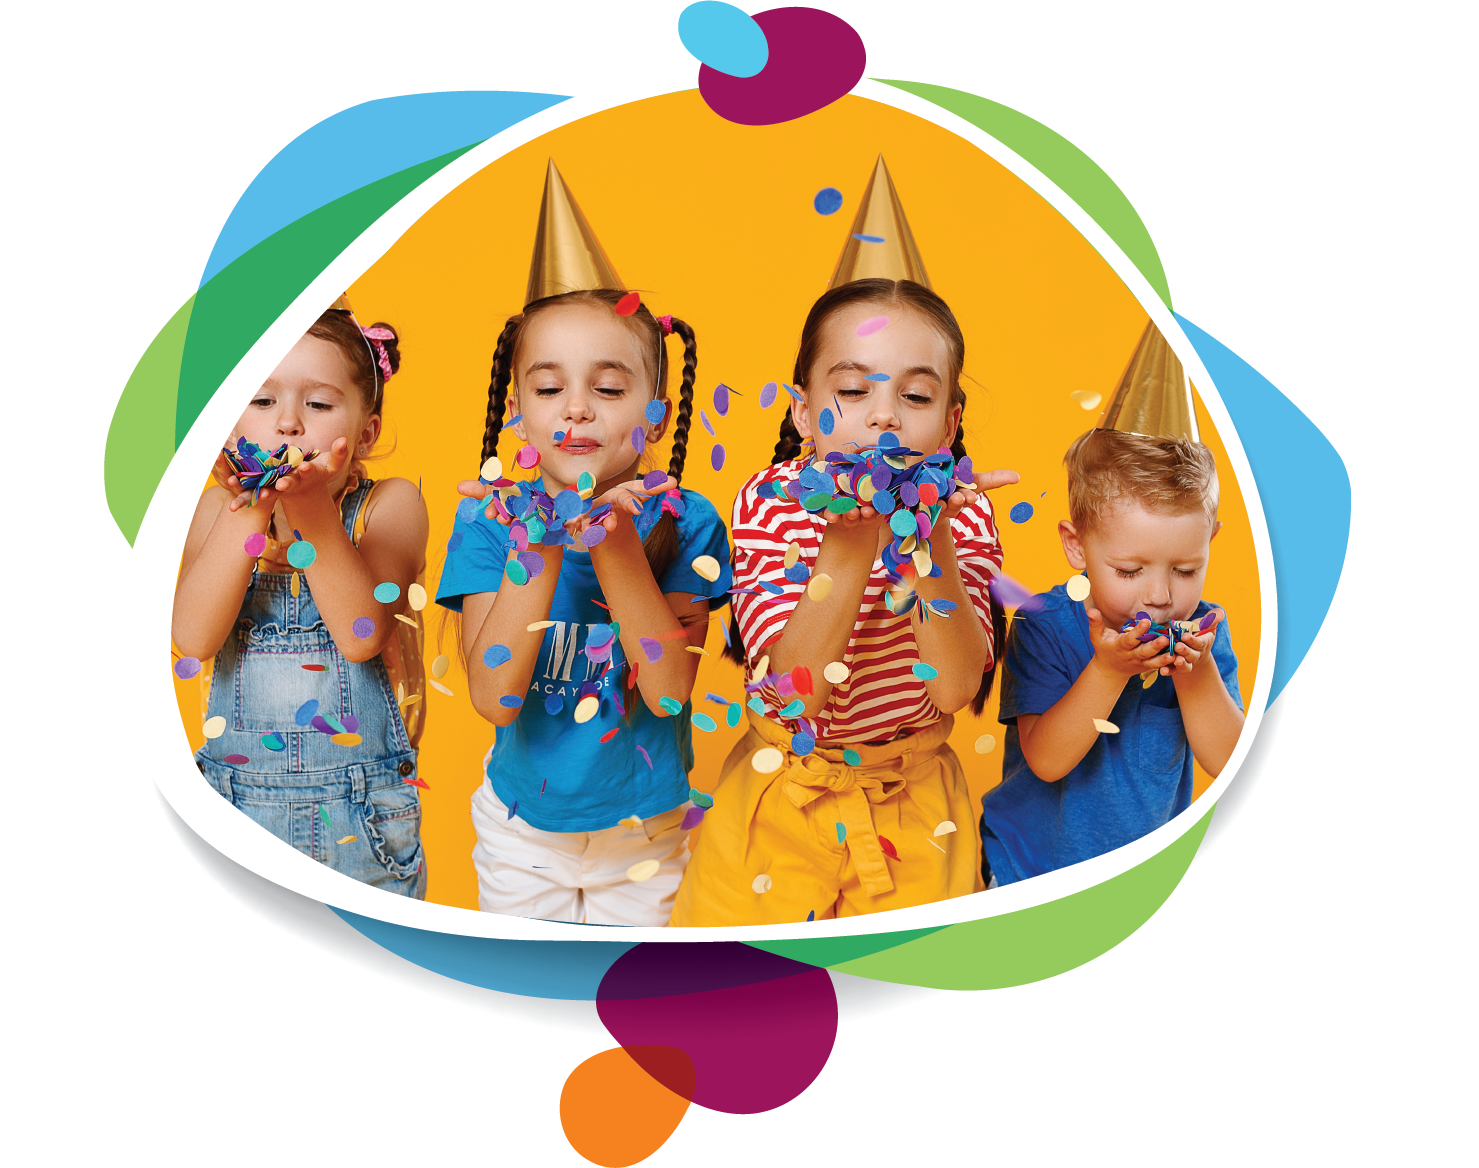 image of young children blowing confetti out of their hands